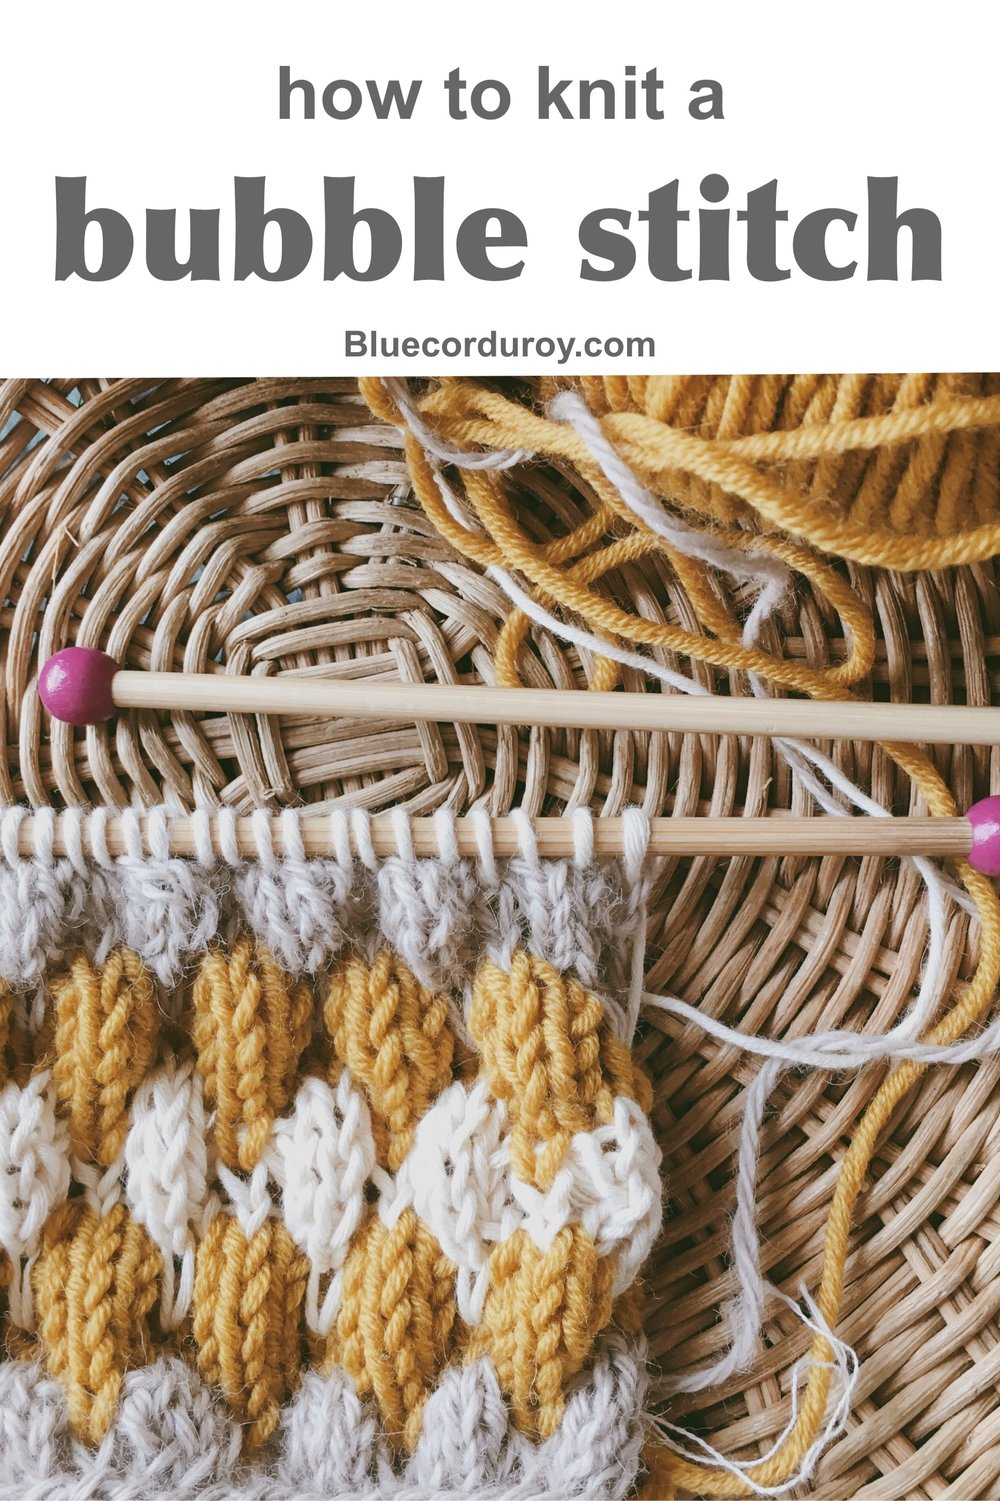 How to knit a Bubble Stitch Tutorial including video by Emily of Blue Corduroy